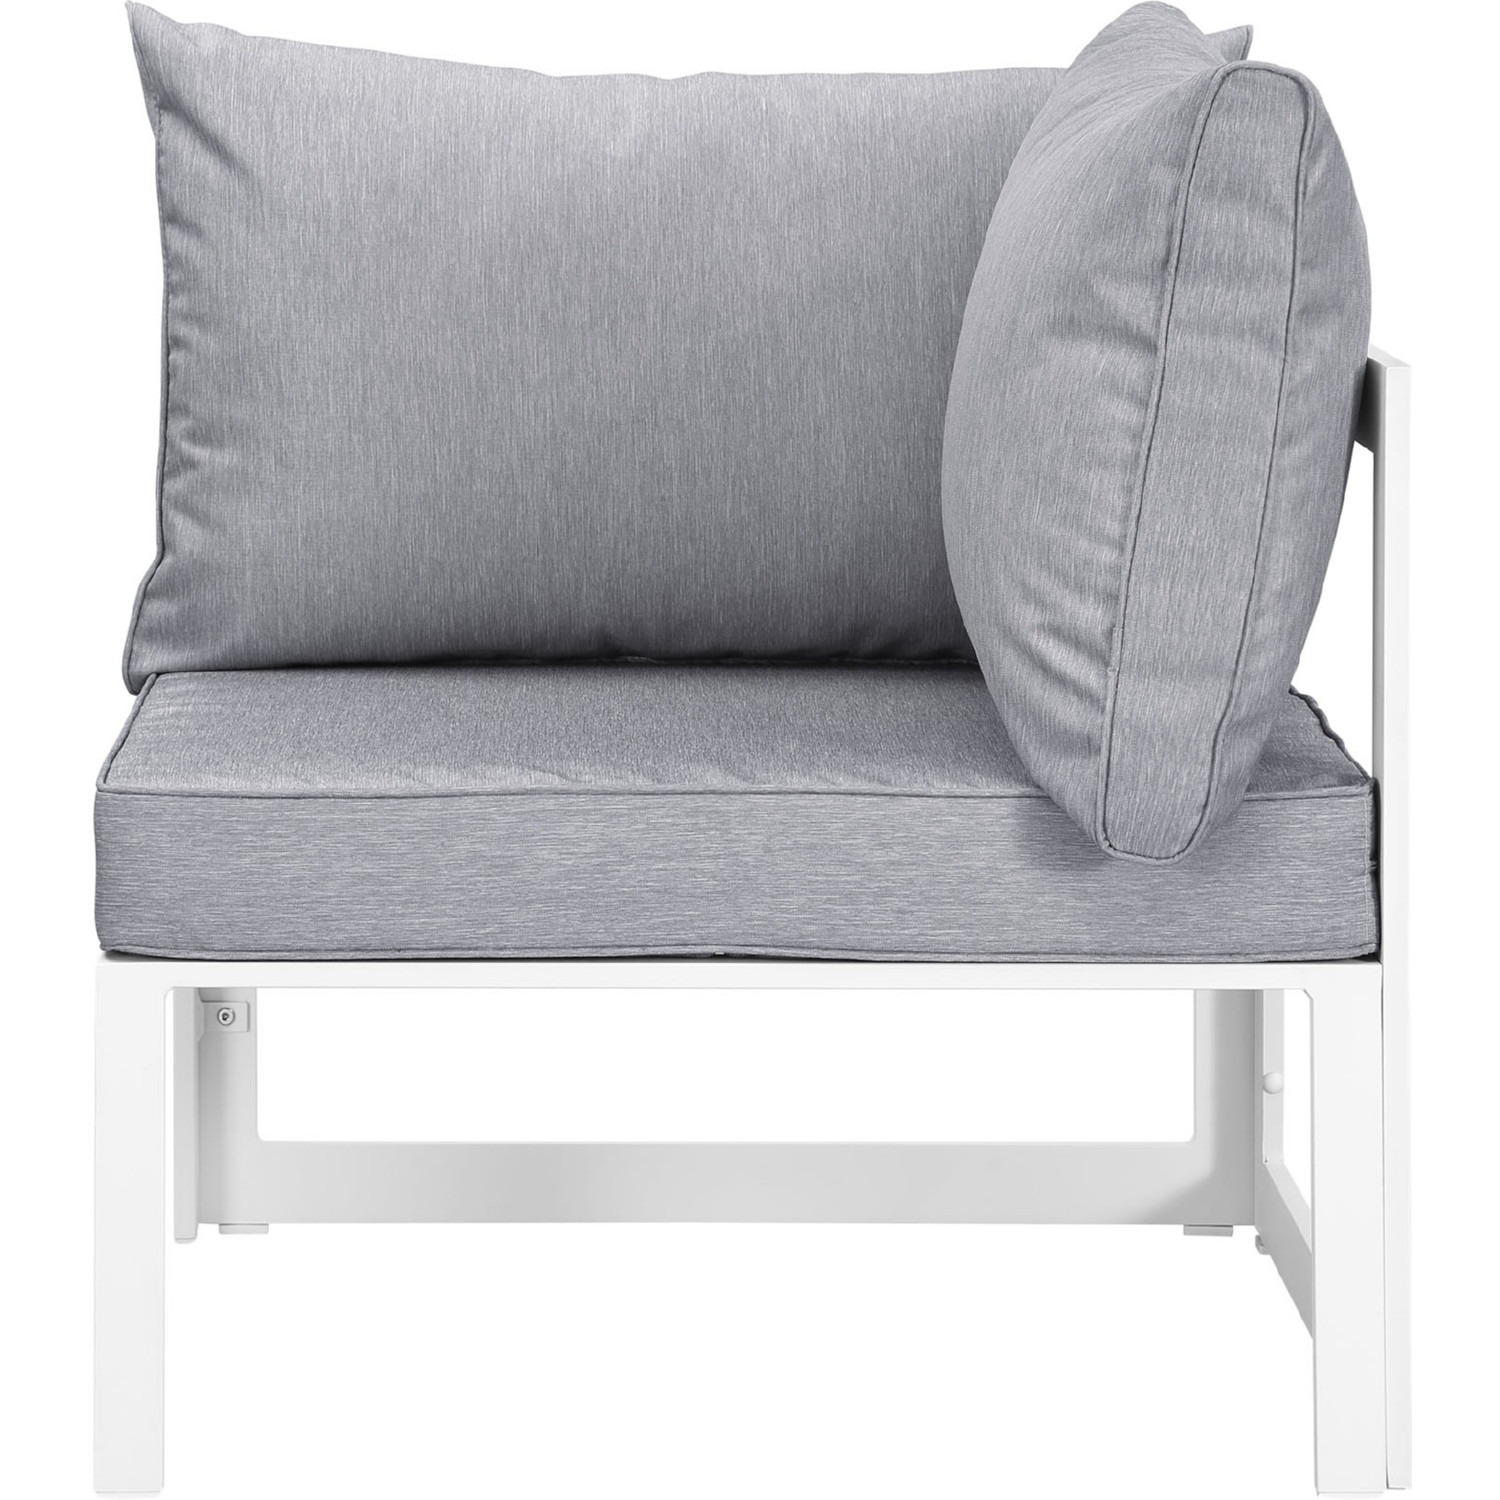 7-Piece Outdoor Sectional In Gray & White Finish - image-4